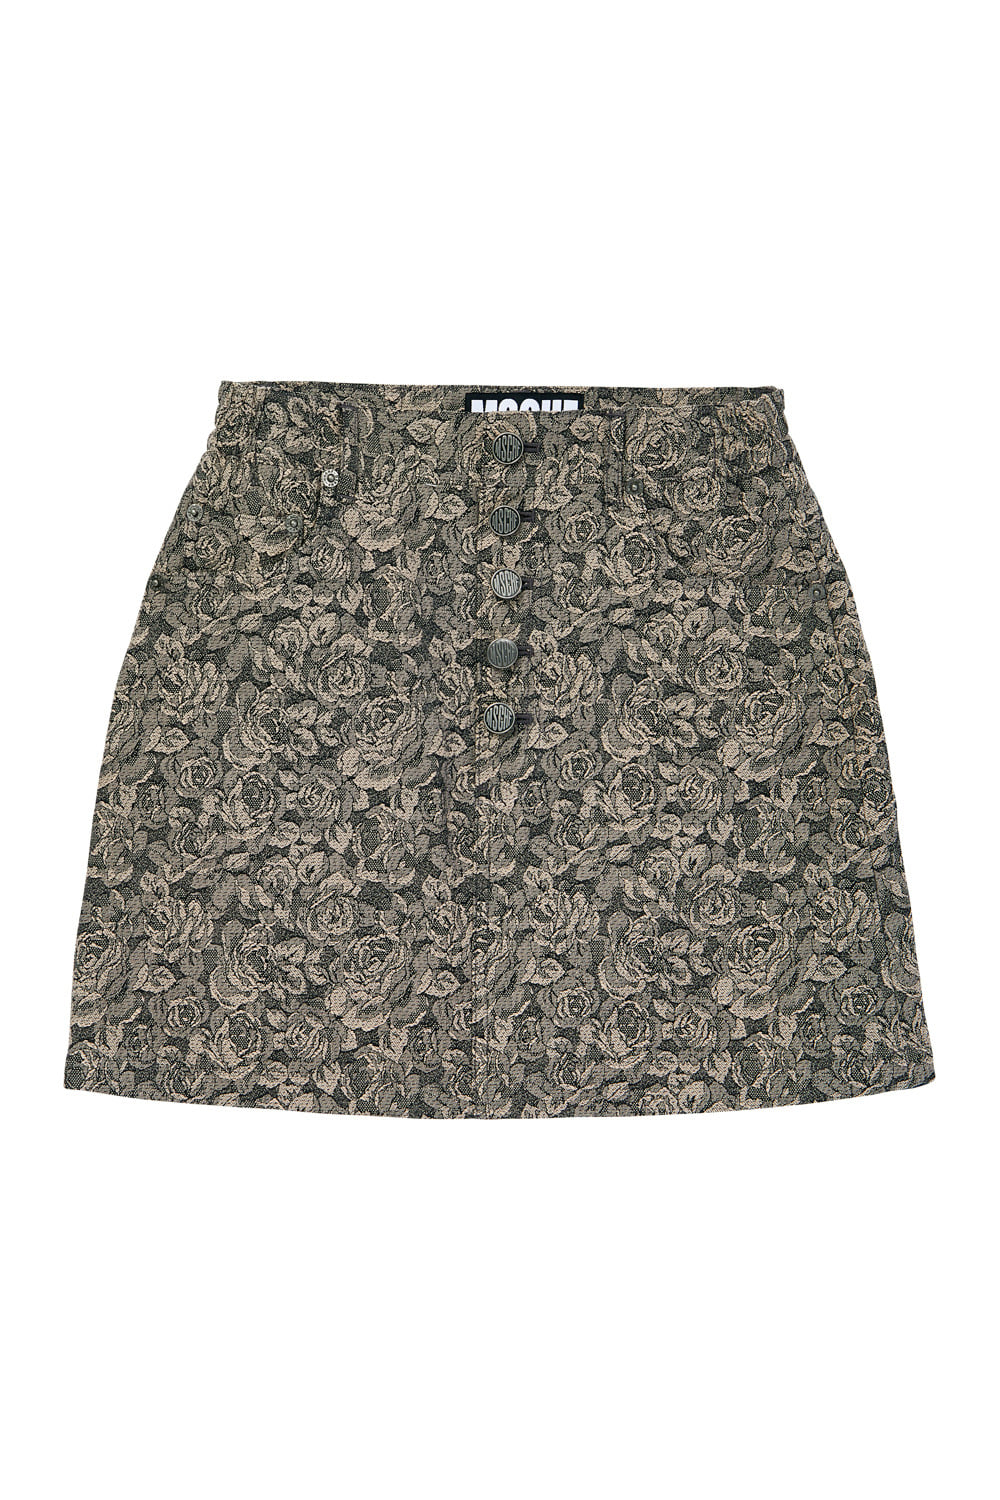 JACQUARD BUTTON UP SKIRT_beige rose